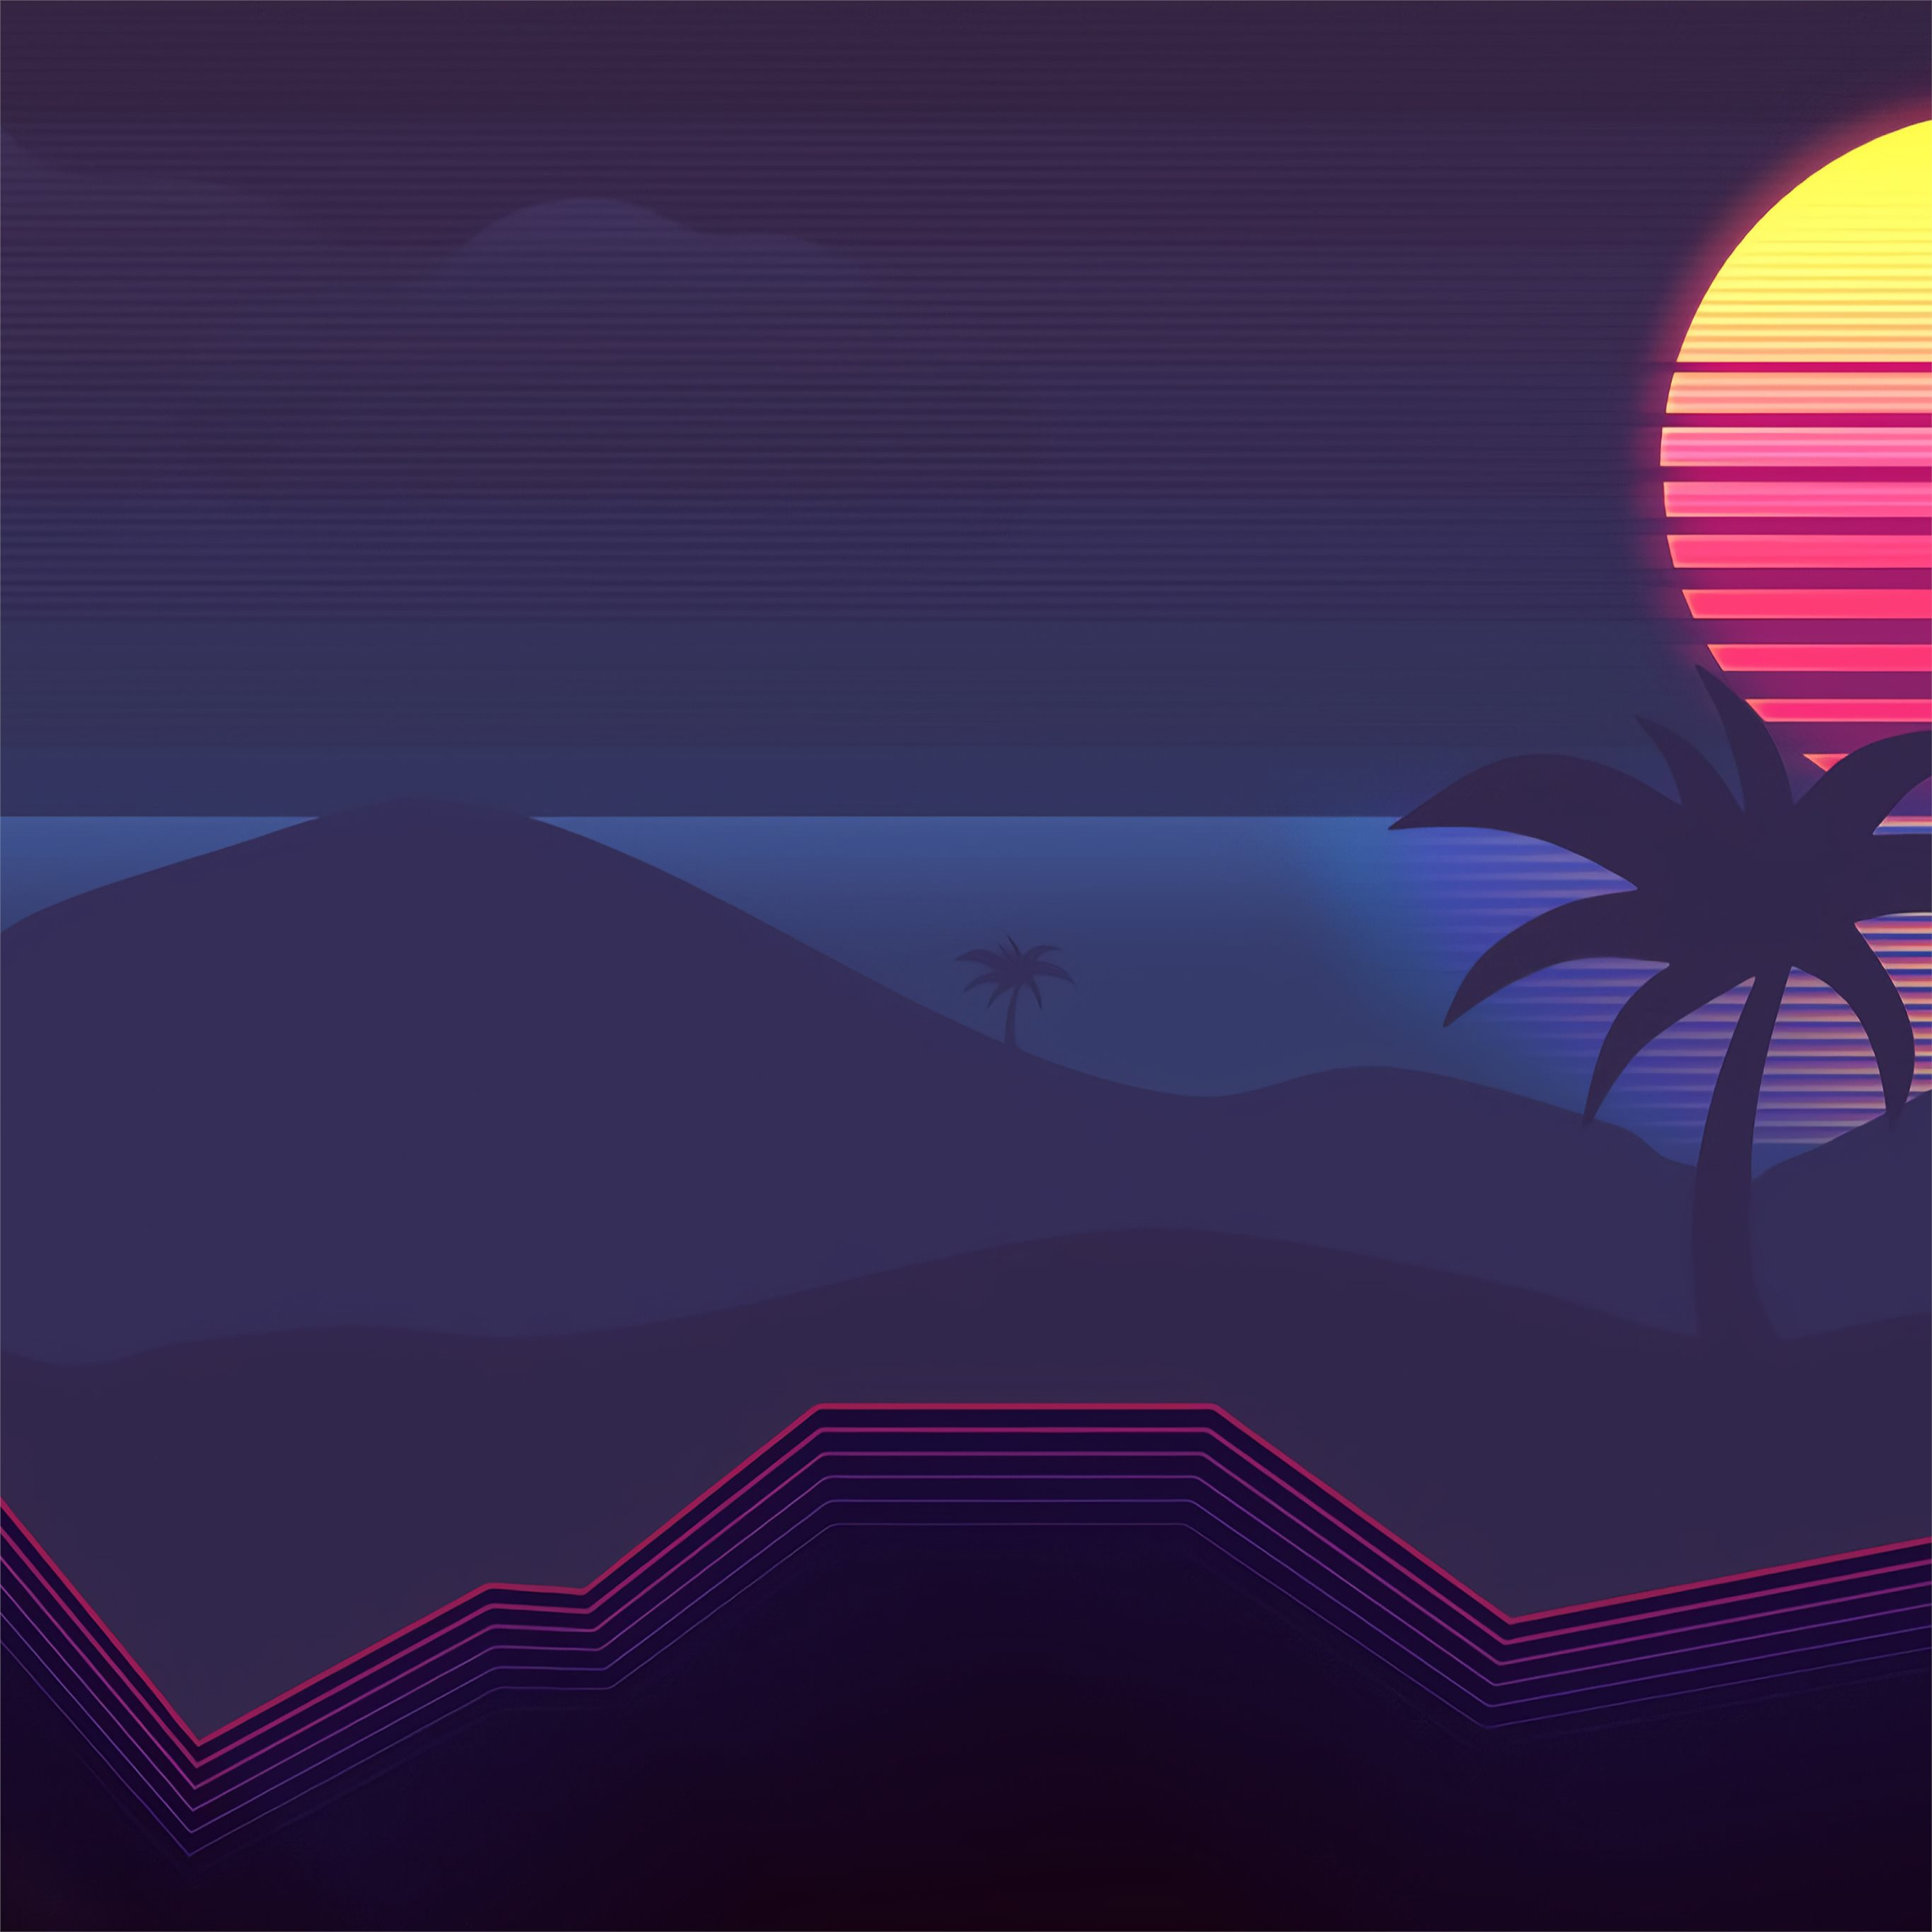 Synthwave Abstract 4k IPad Pro Wallpapers Free Download